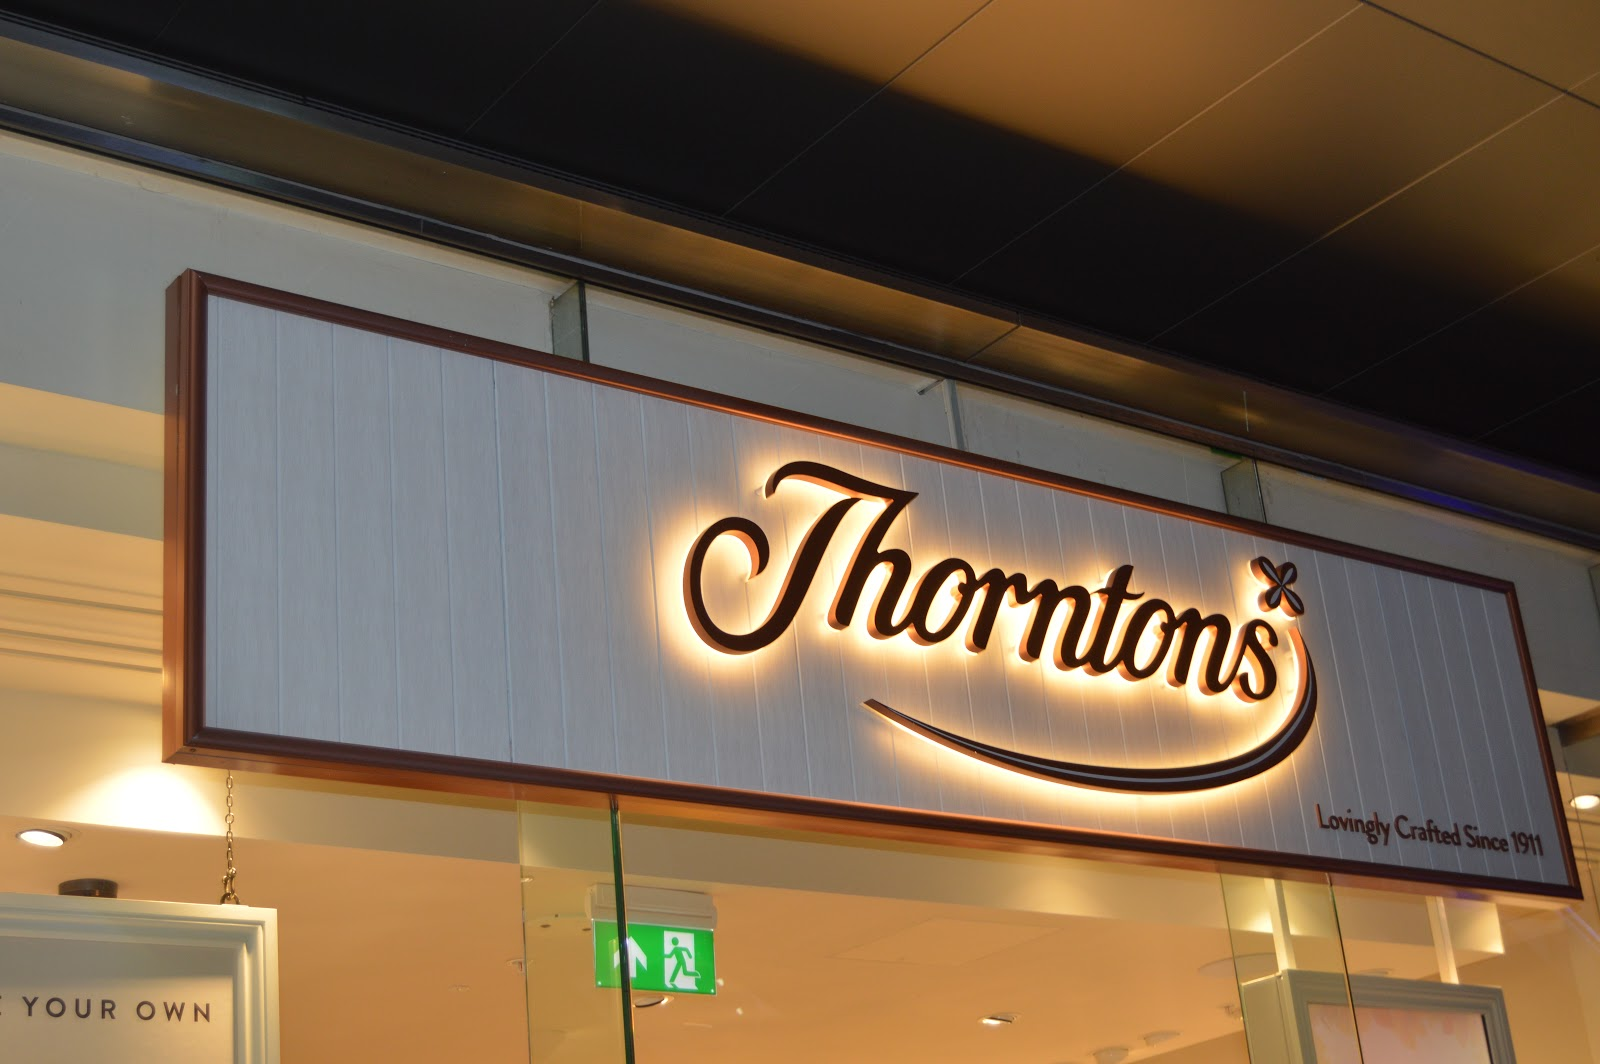 outside Thorntons